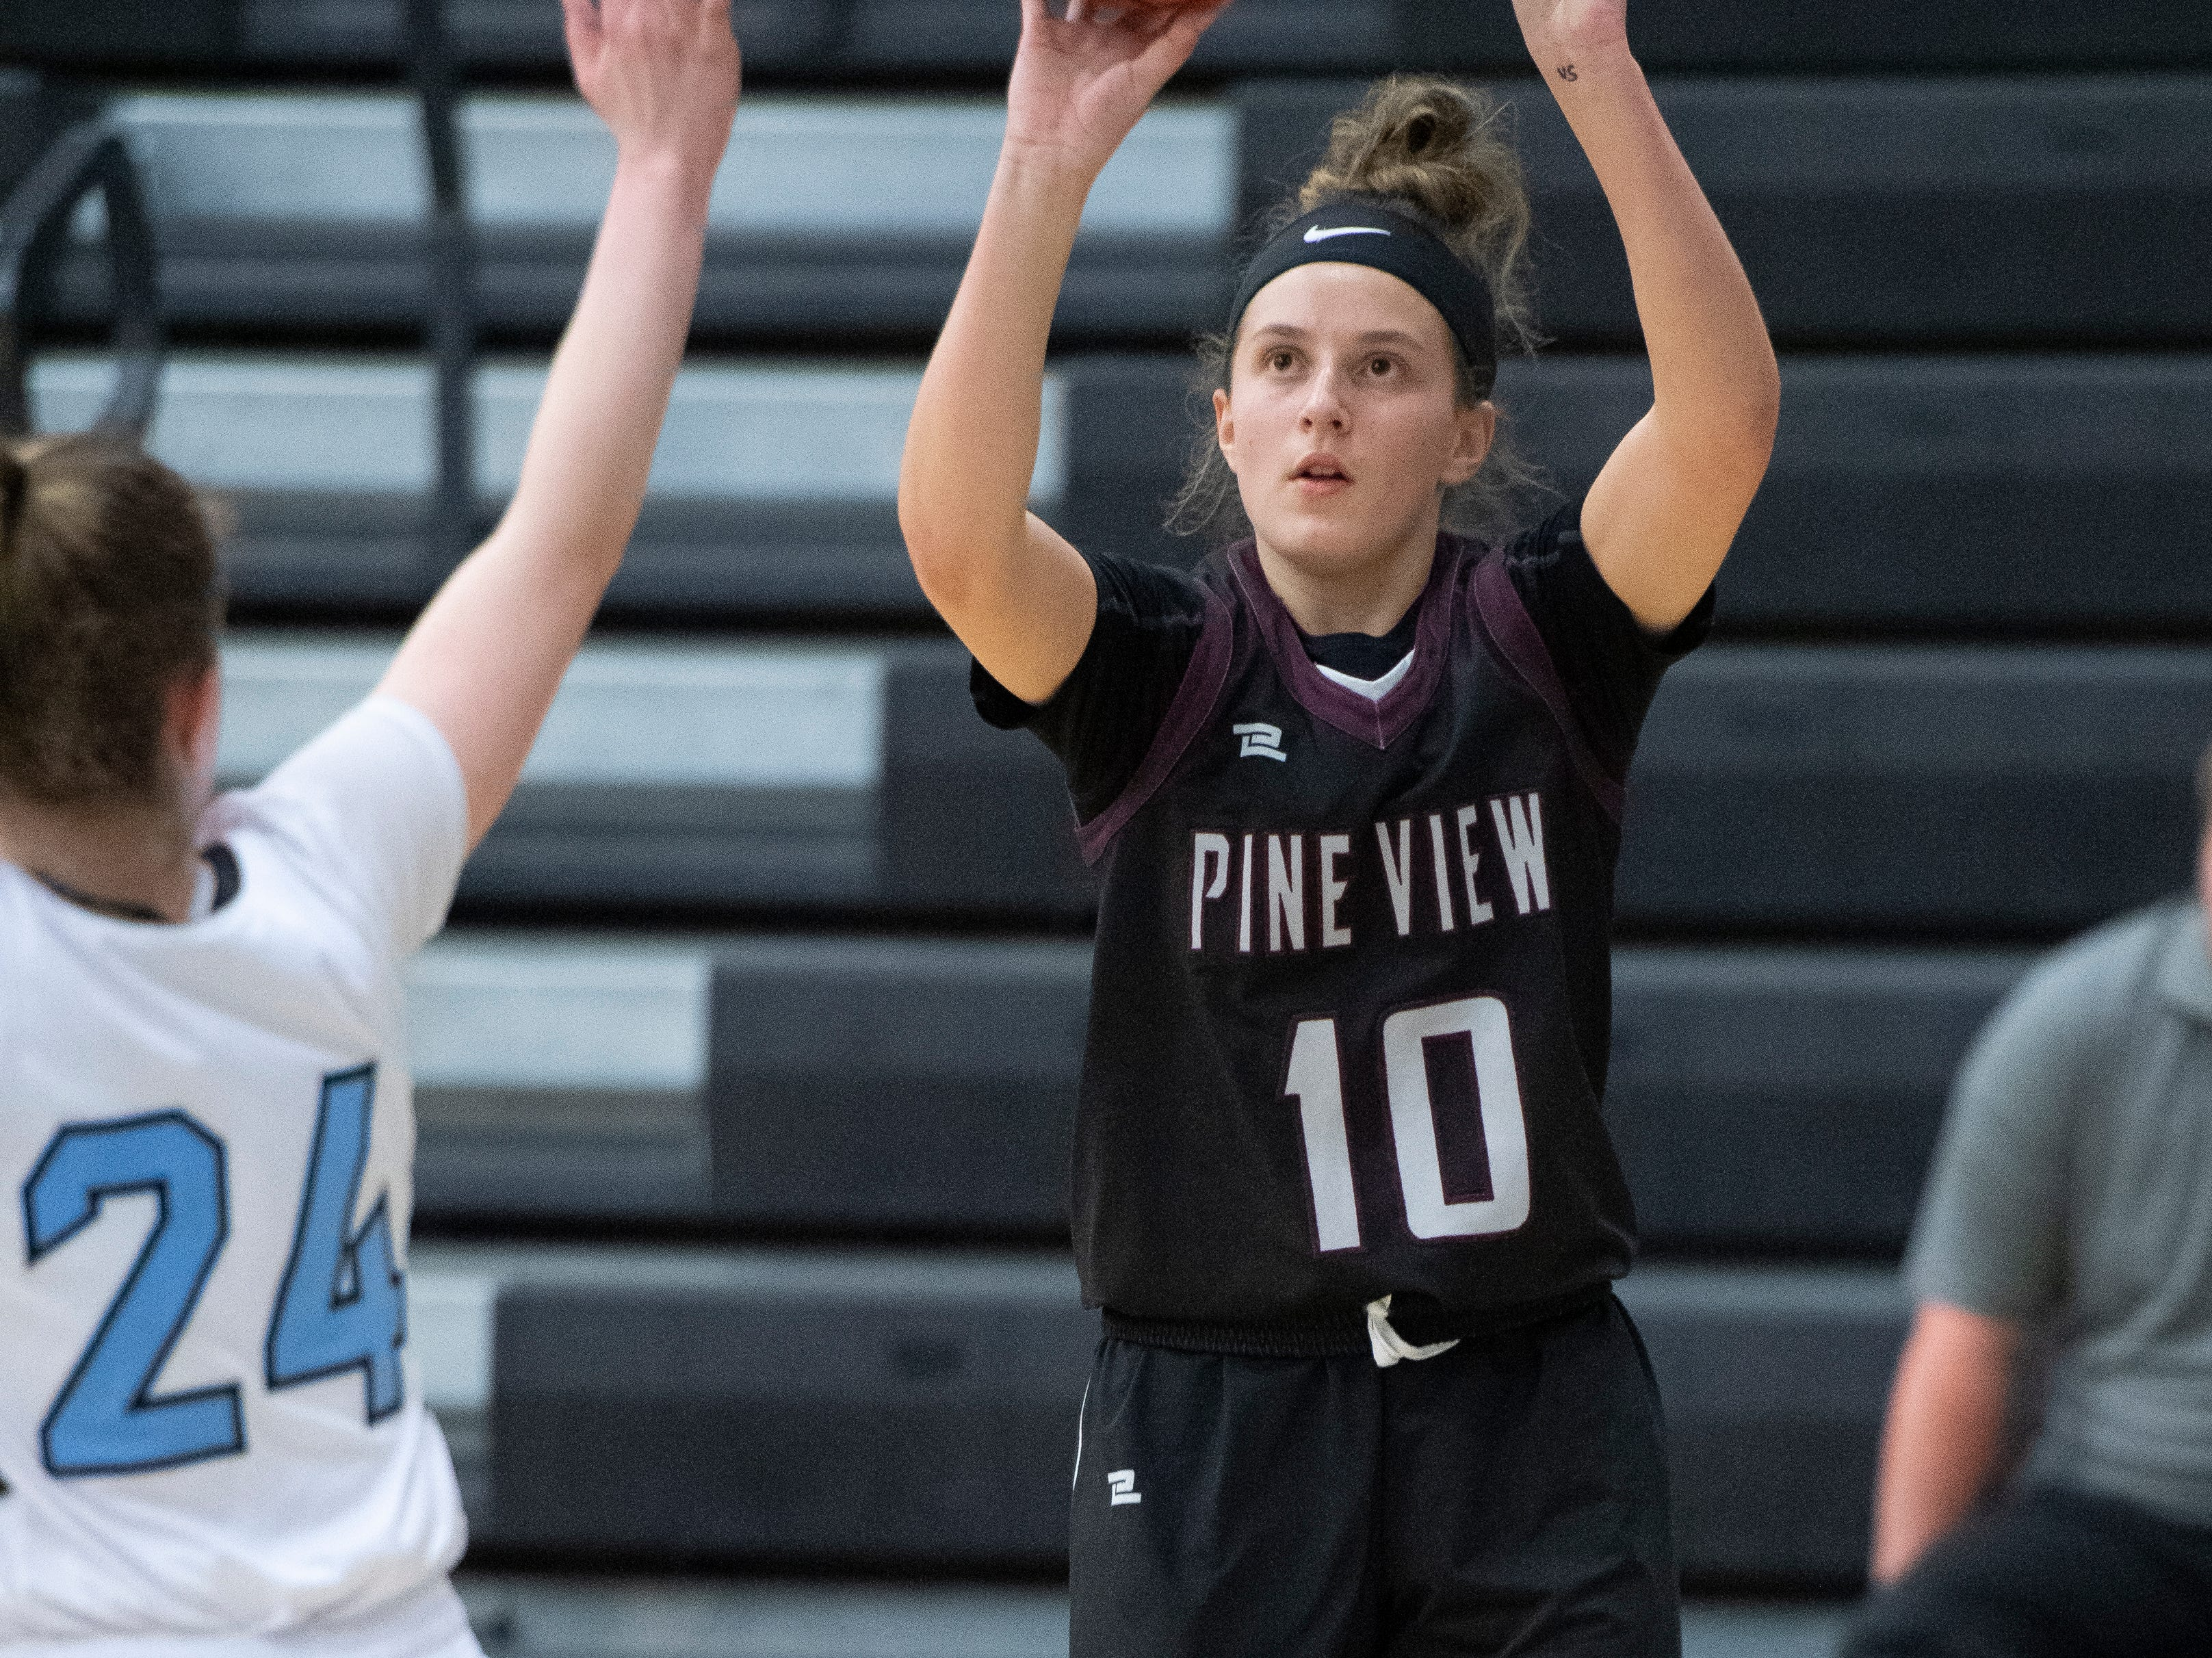 Pine View High School sophomore Alexandra Olson (10) makes a basket against Canyon View at CVHS Tuesday, January 15, 2019. The CVHS Falcons won, 48-46.